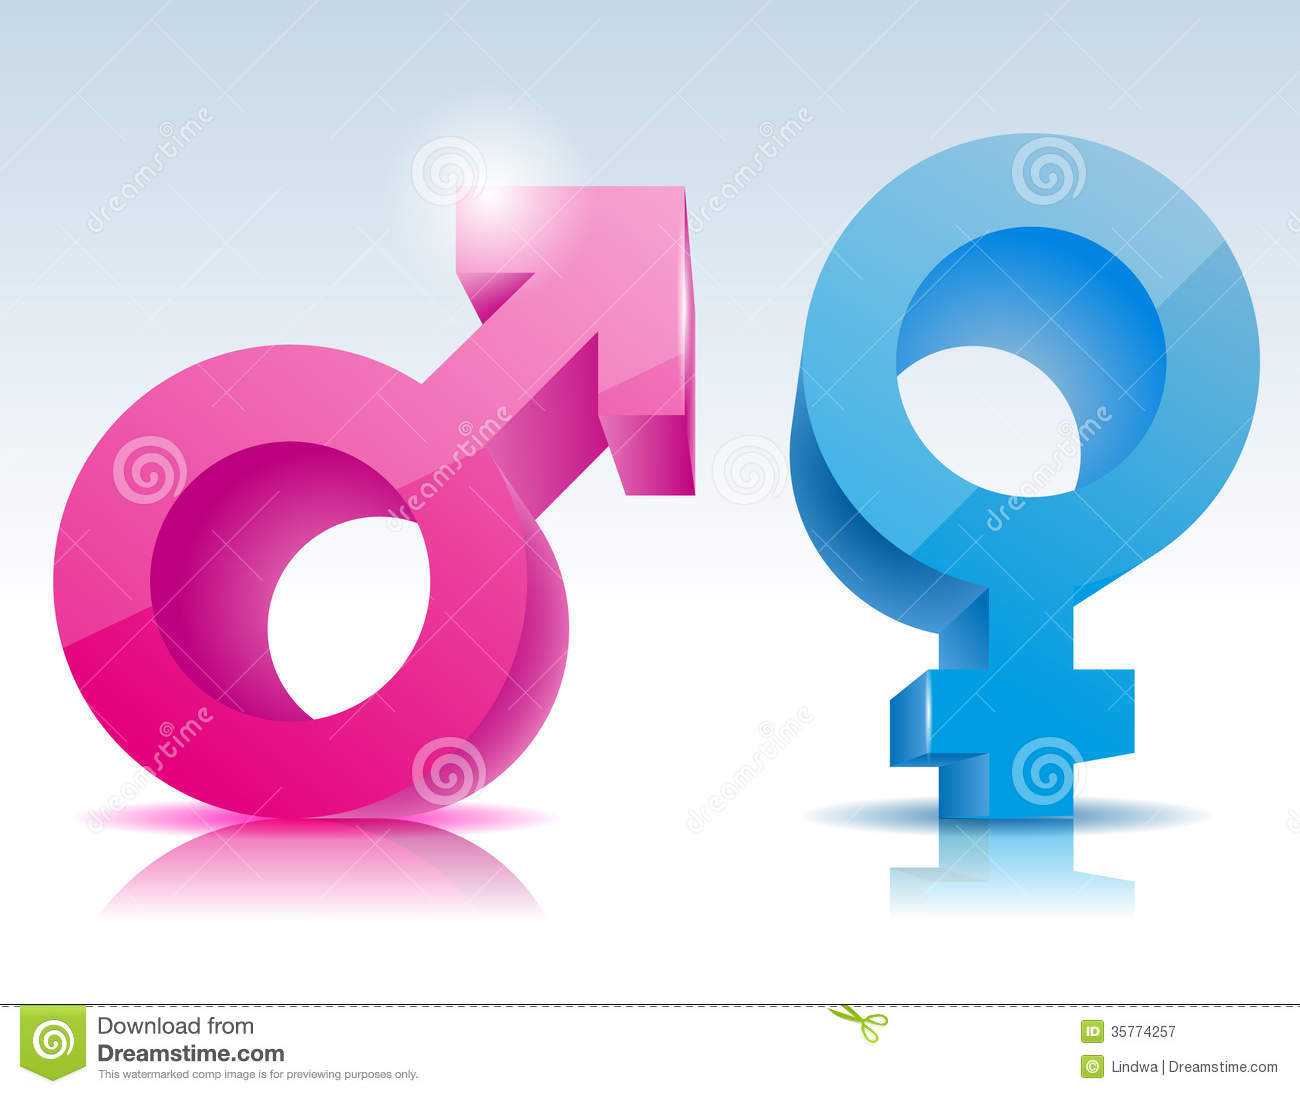 Male Female Symbol Royalty Free Stock Photography - Image: 35774257